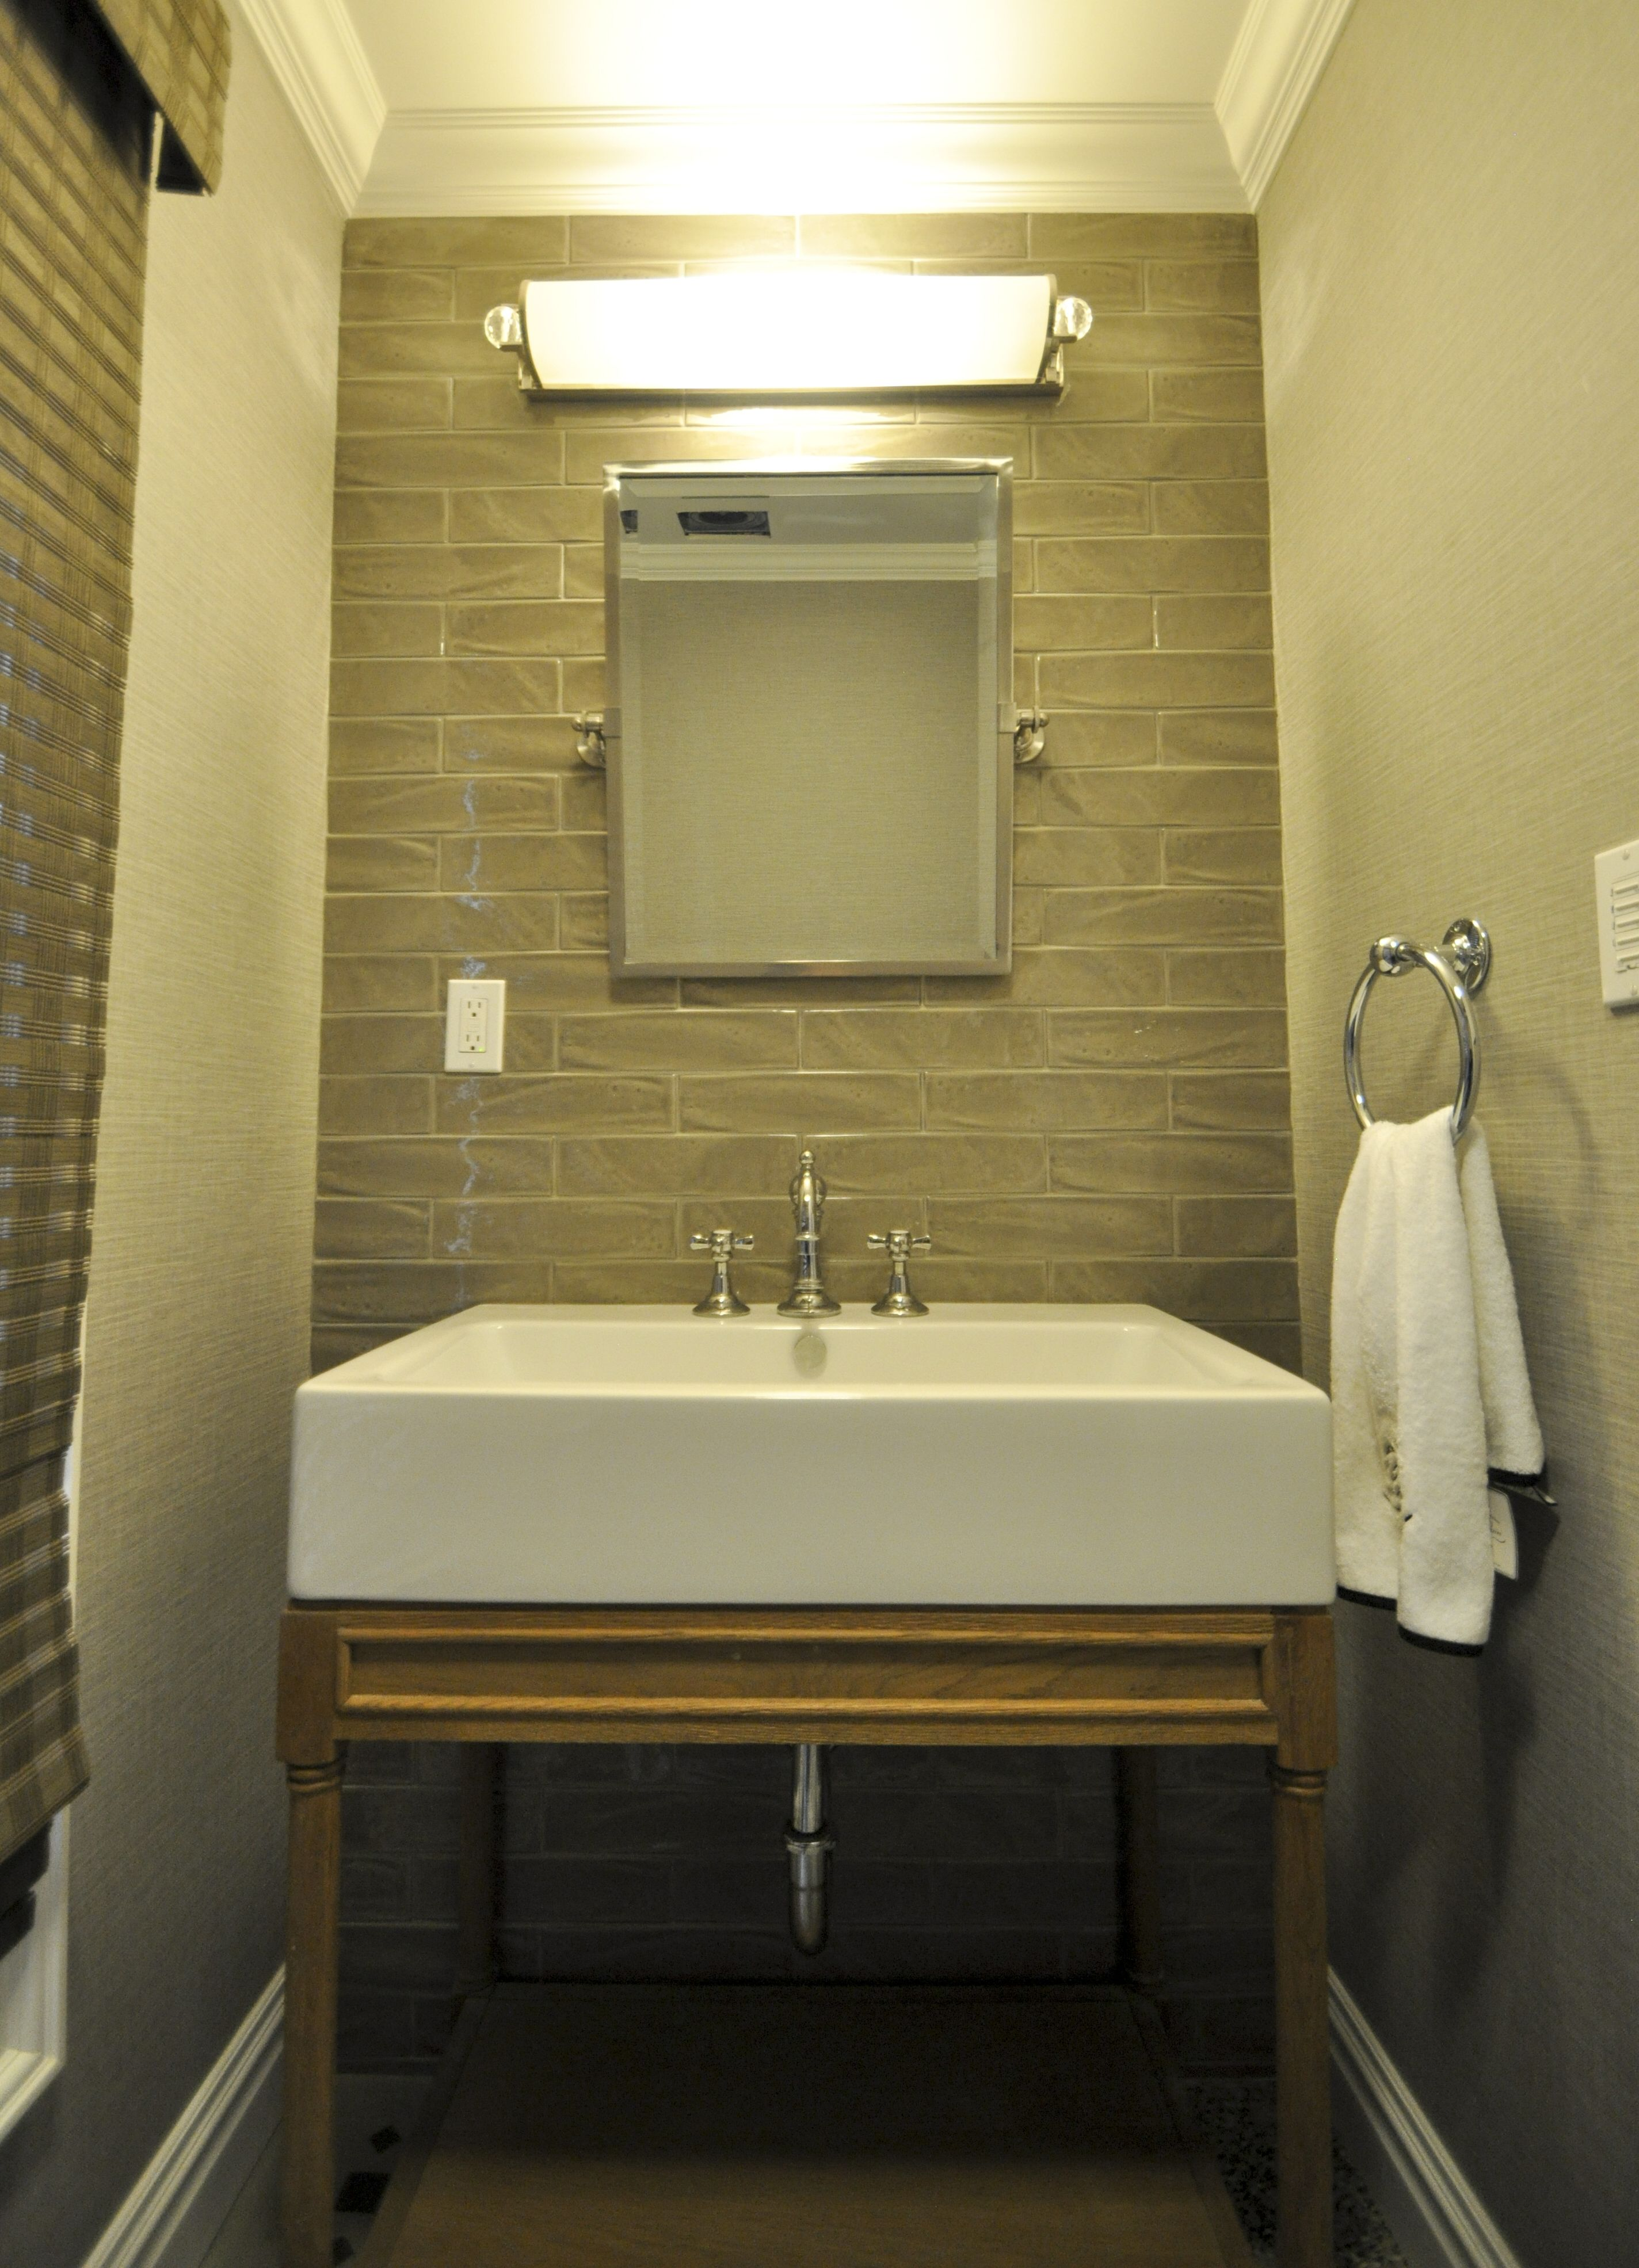 1 2 Bath With Tile Accent Wall Pivot Mirror Chrome Fixtures And Open Bottom Vanity Tile Accent Wall Chrome Fixtures Vanity